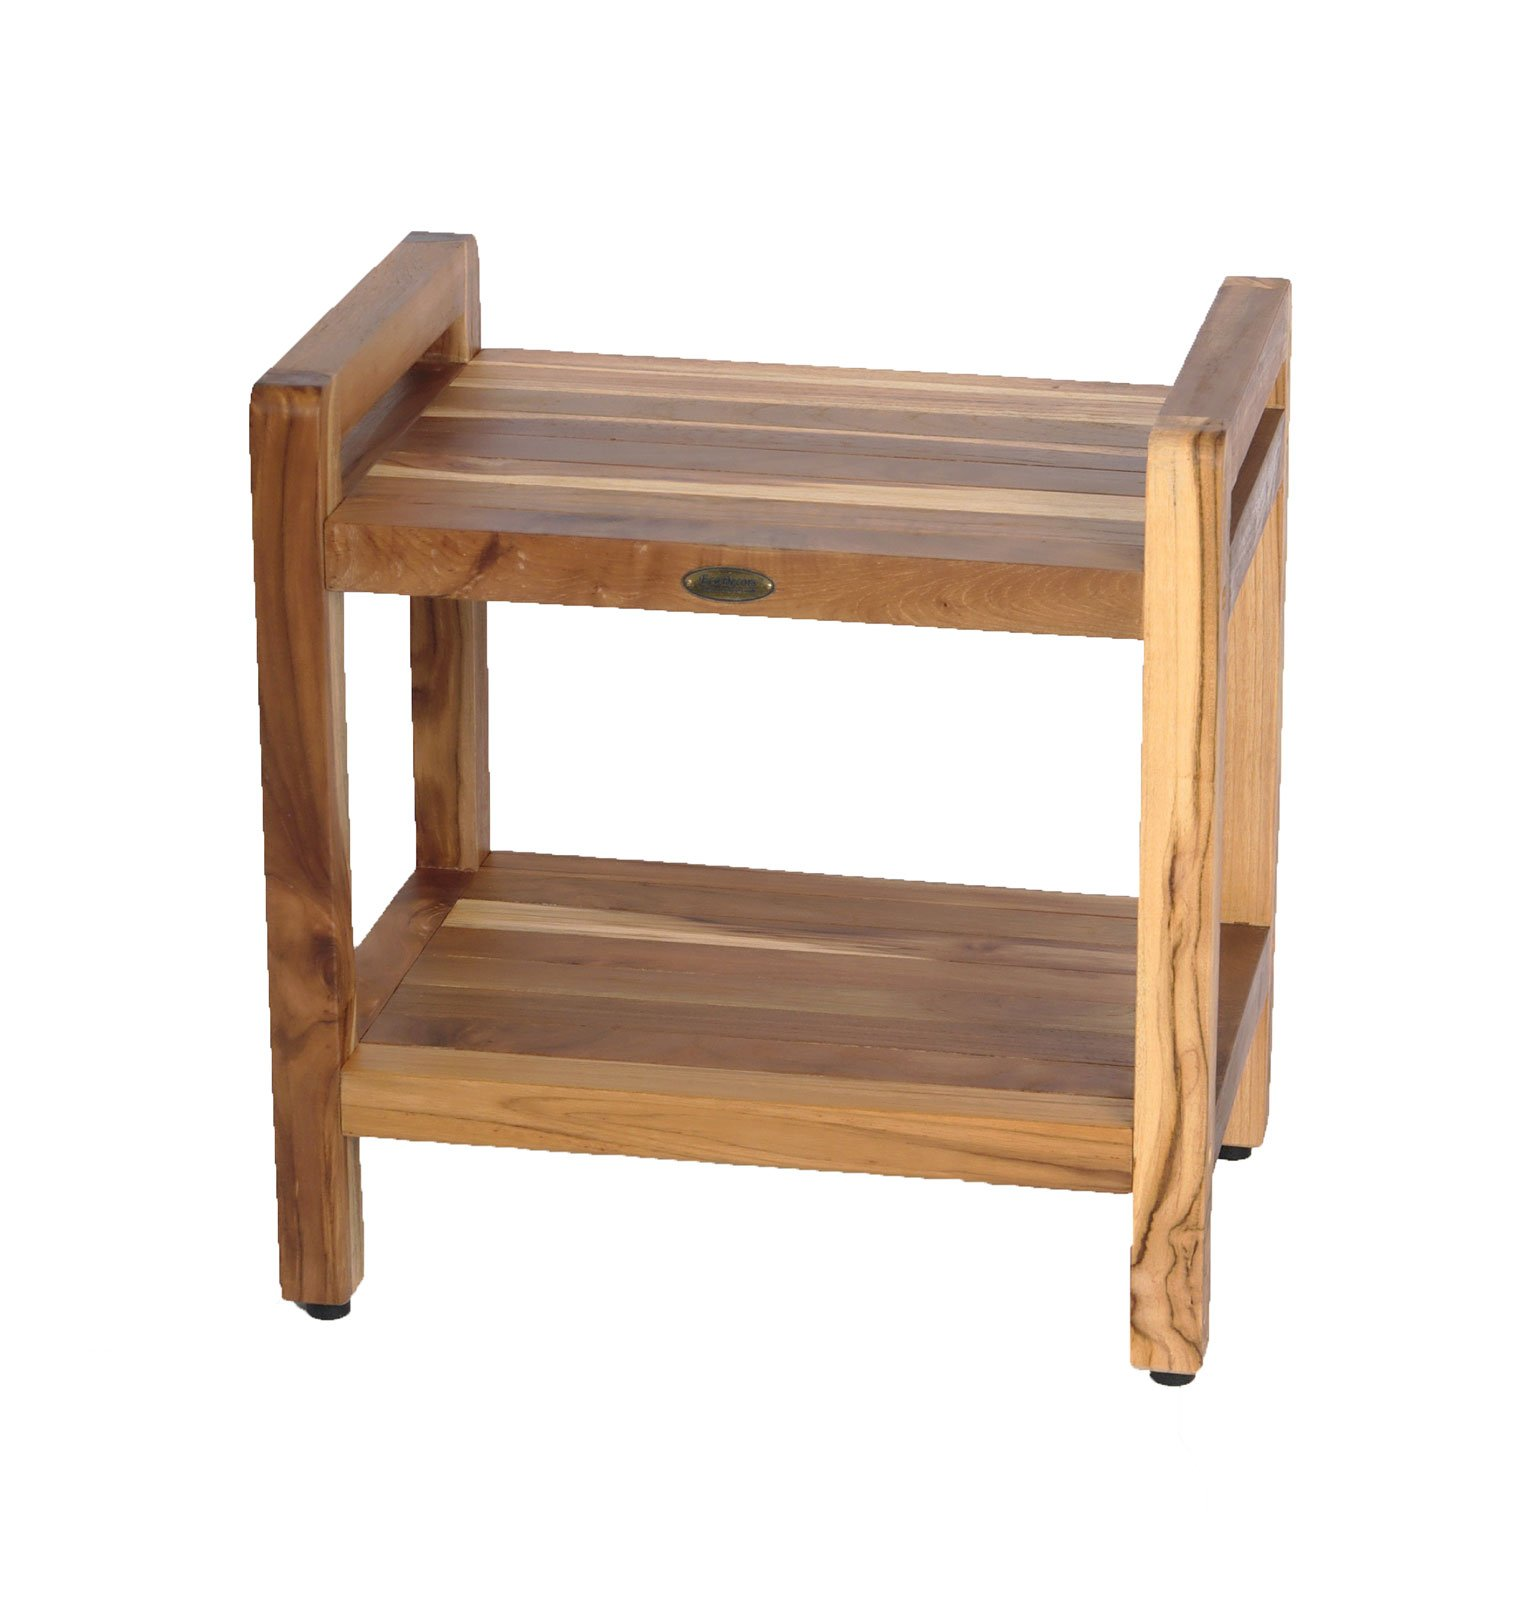 20'' EcoDecors EarthyTeak™ Teak Shower Bench with Shelf and Ergonomic Lift Aid Arms by EcoDecors